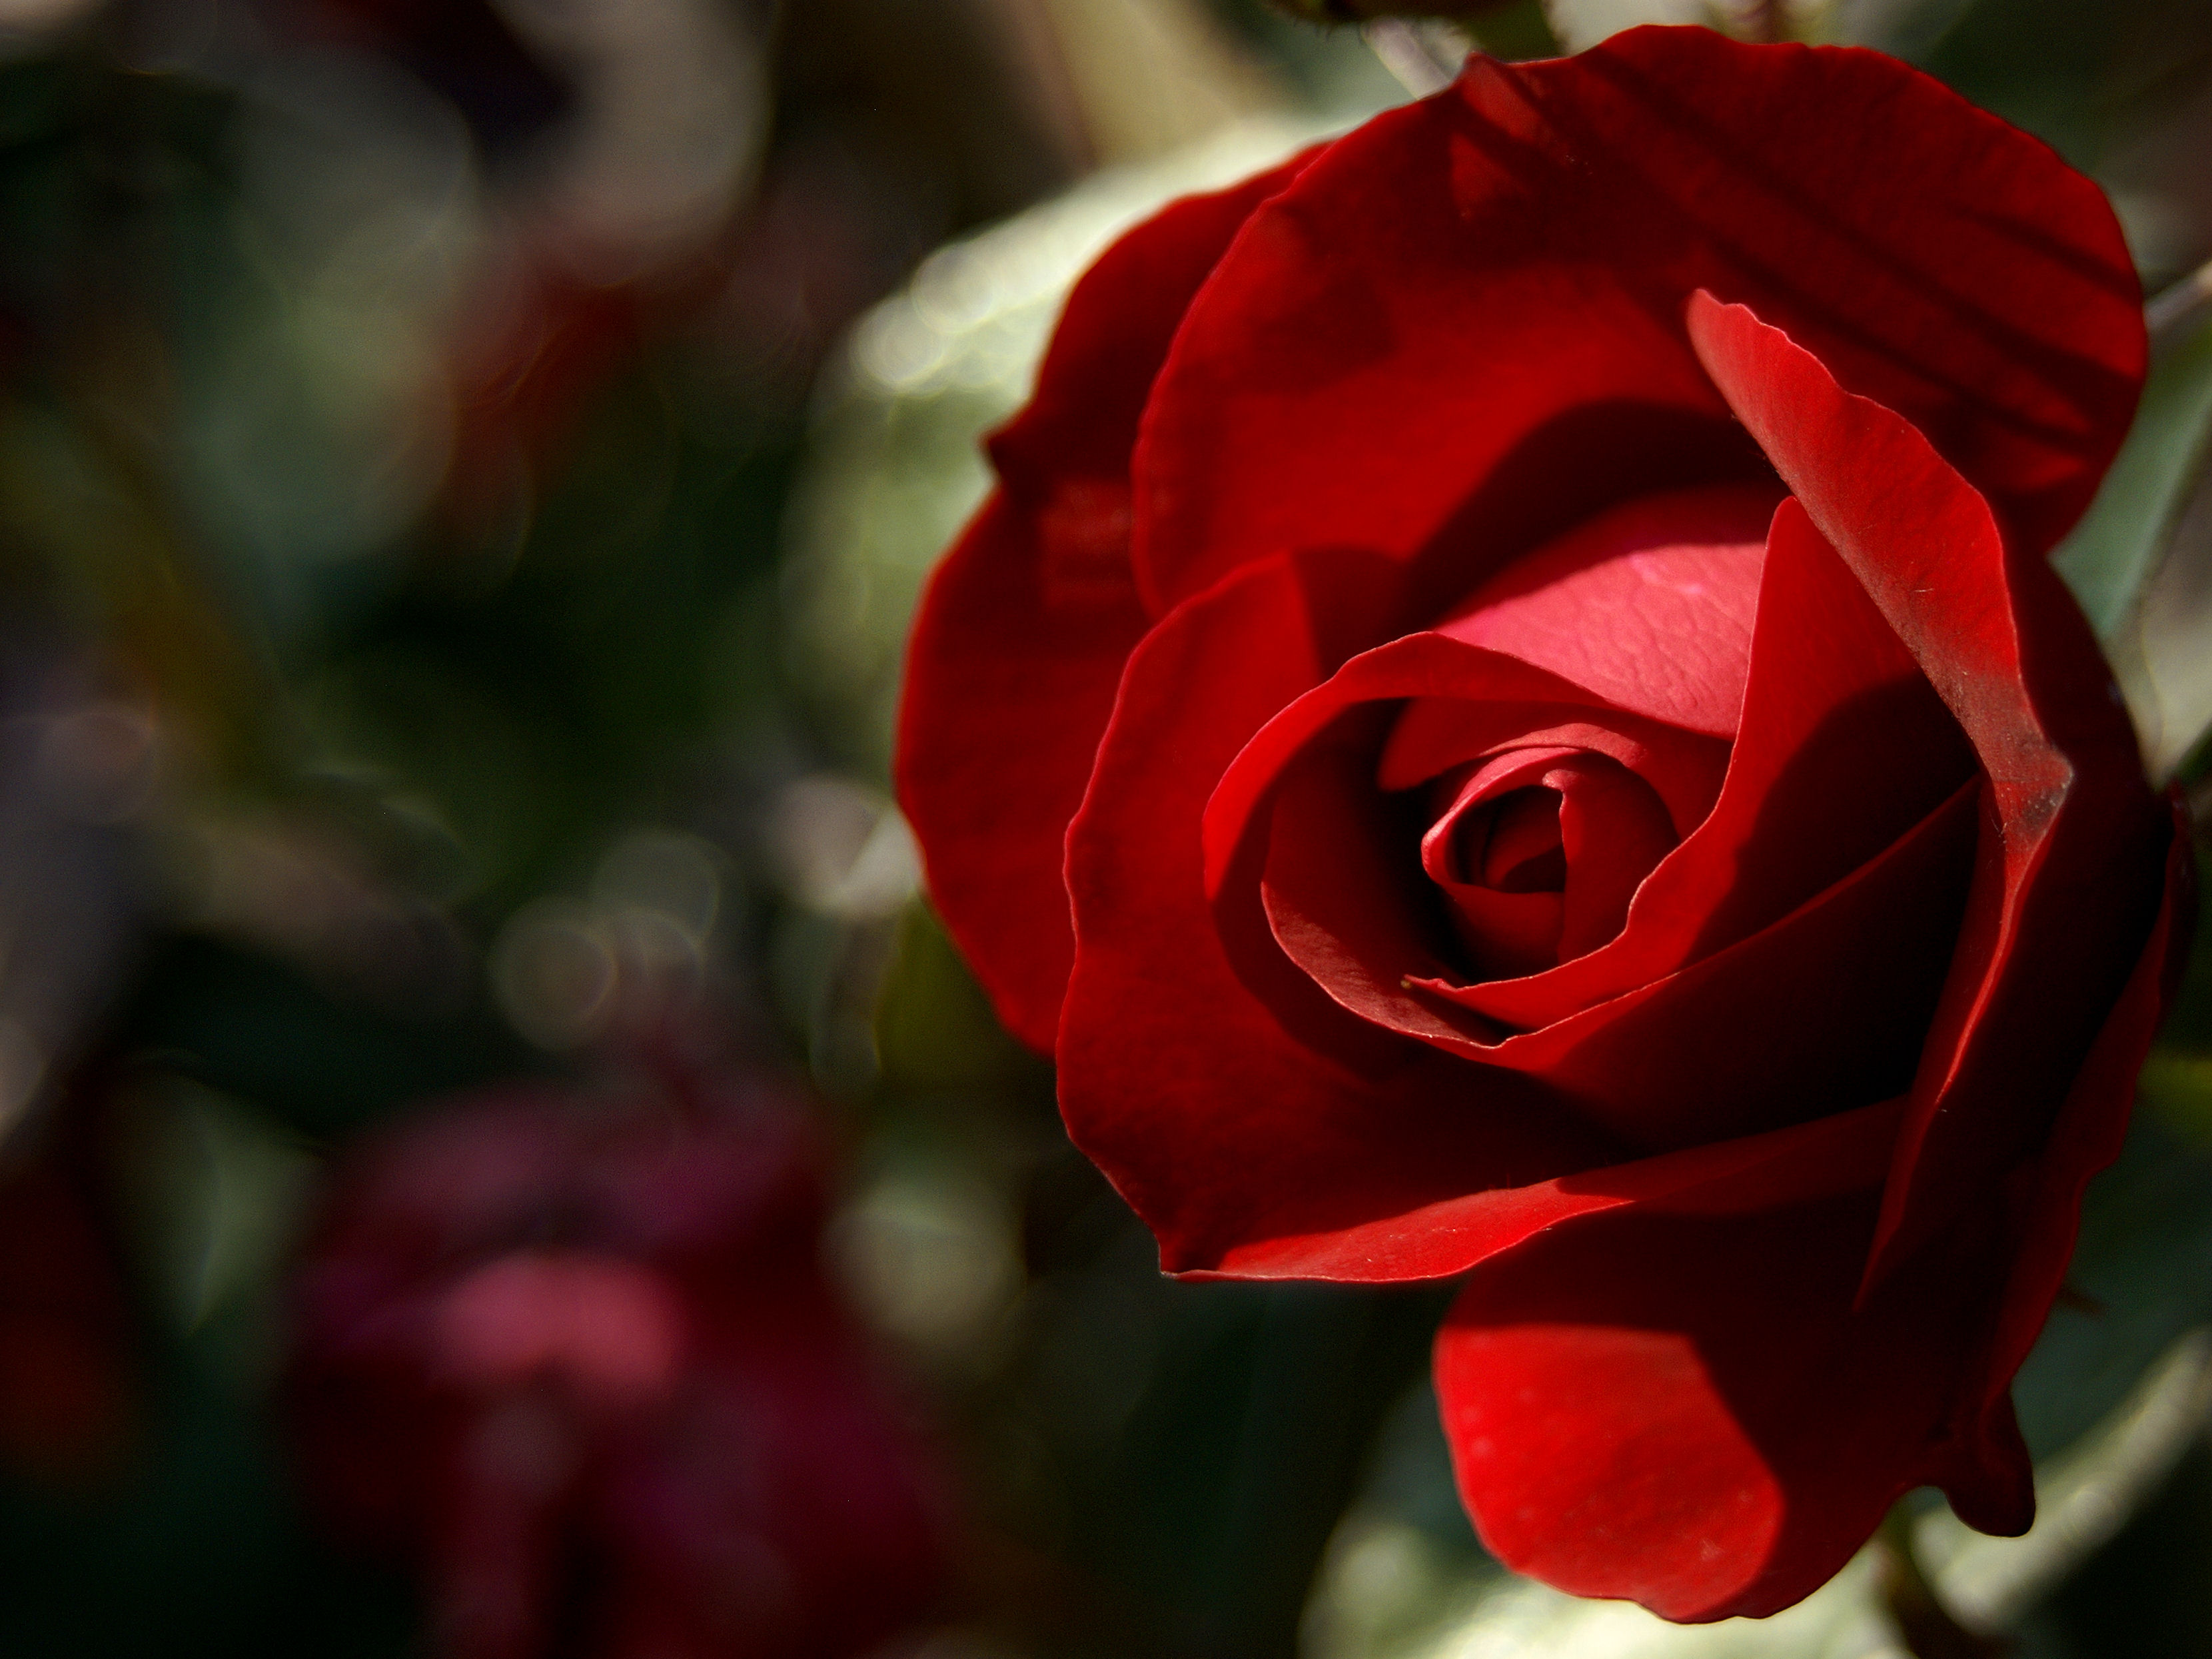 Red Rose Bokeh – Seeking the Beautiful in Life